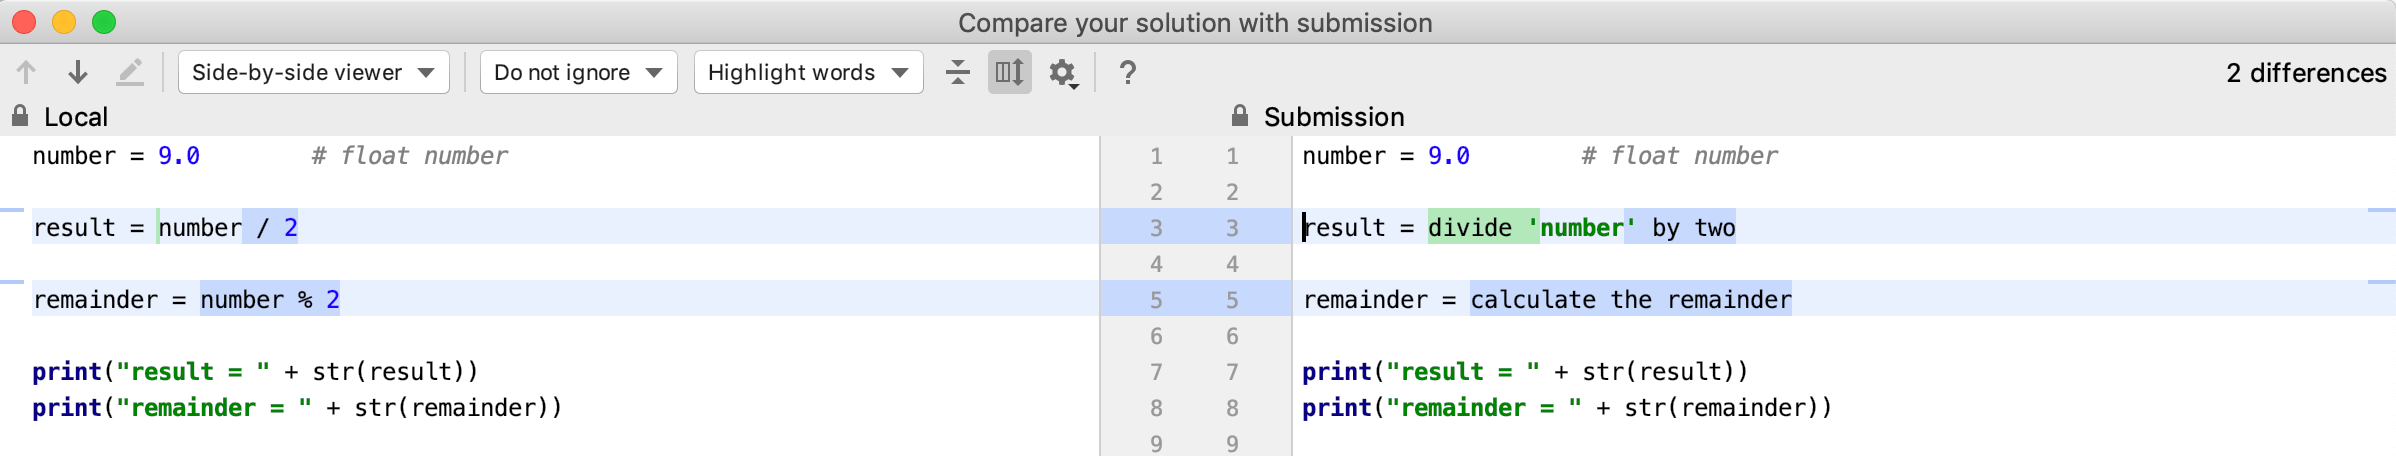 edu submissions diff python intro